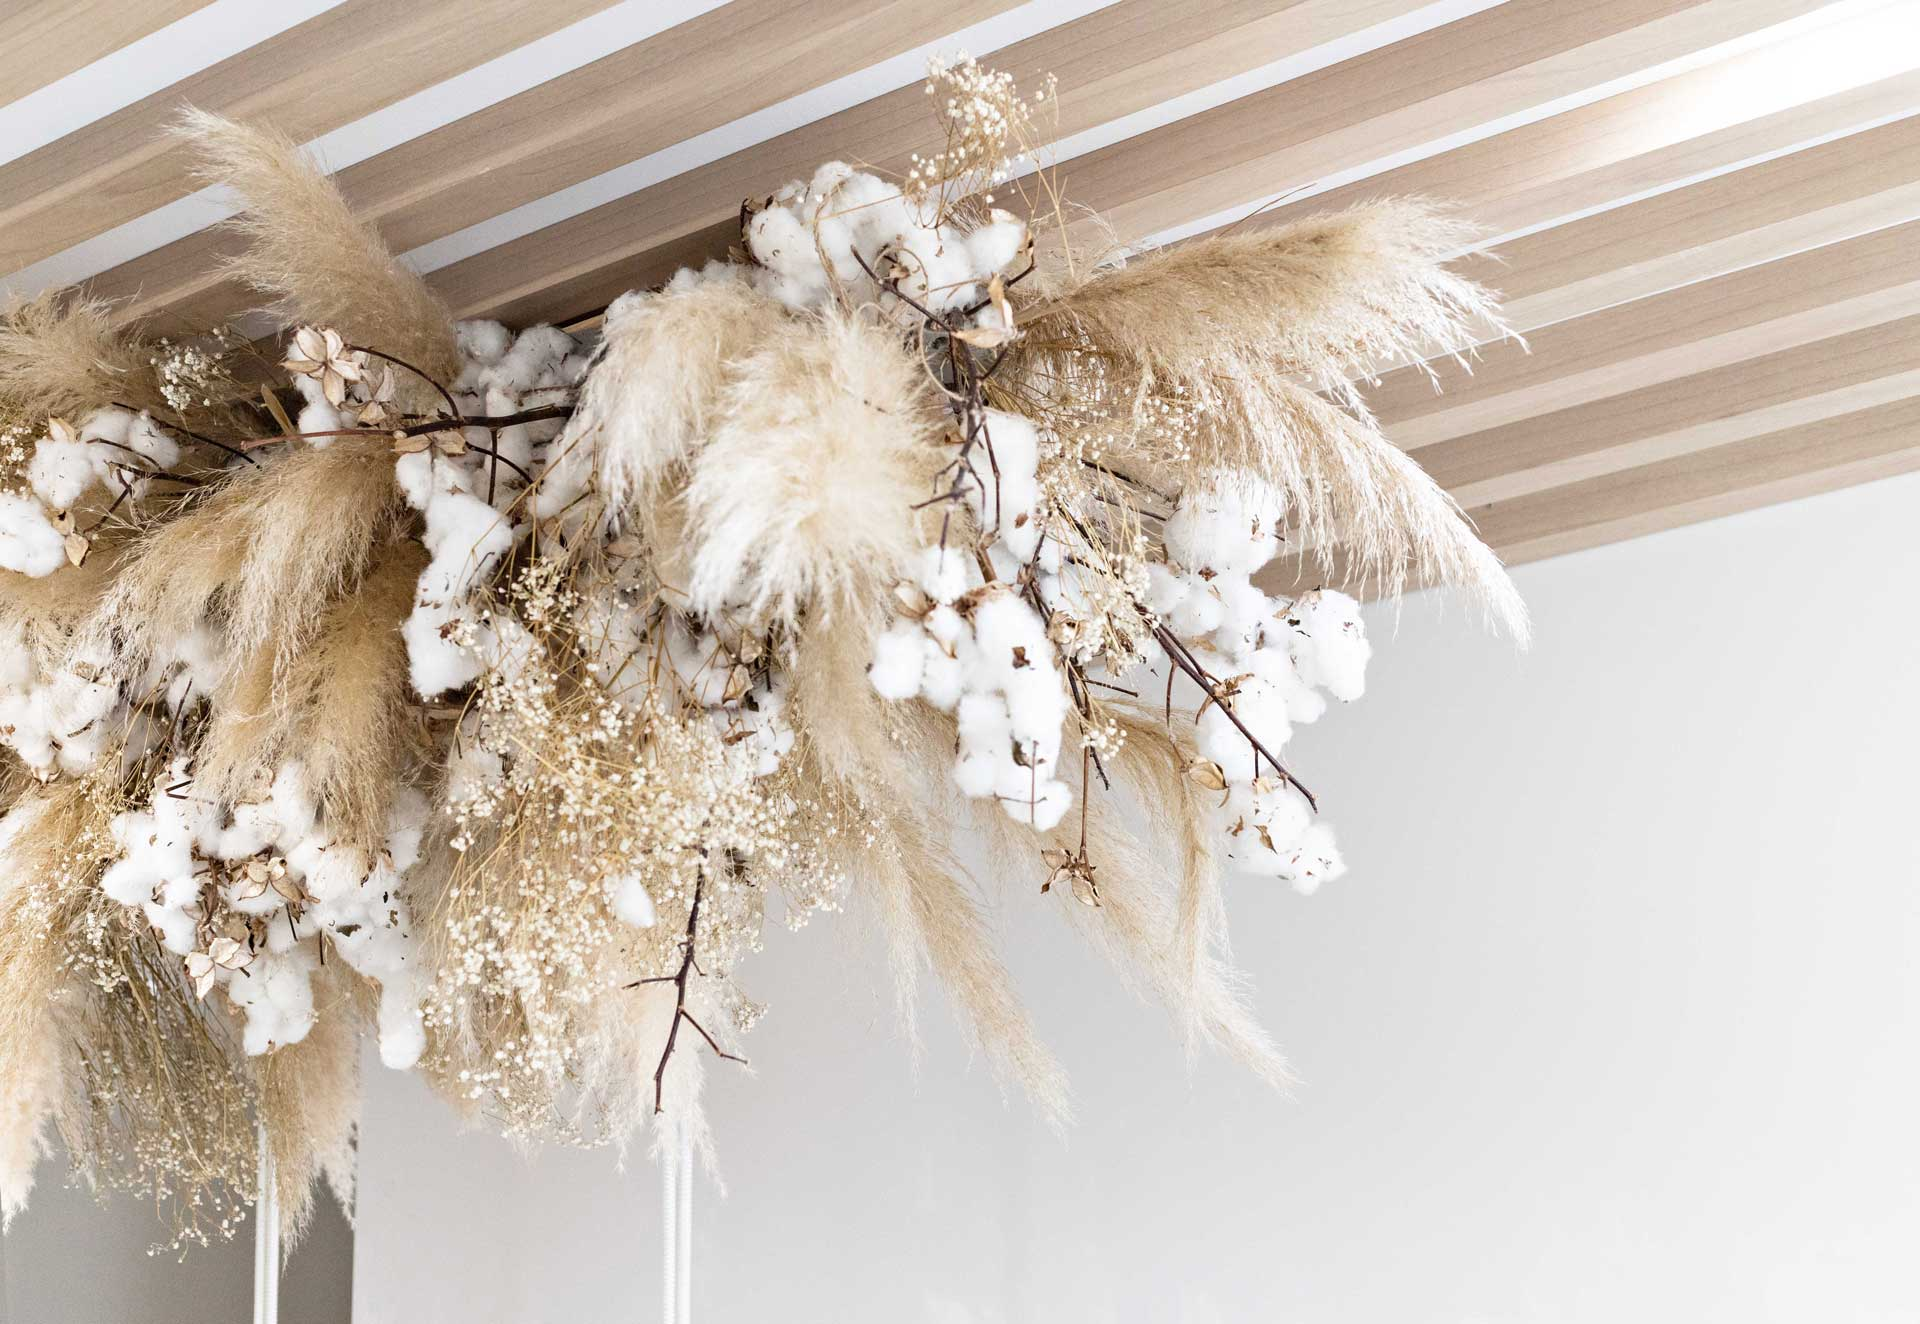 Interior styling of dried flower installment